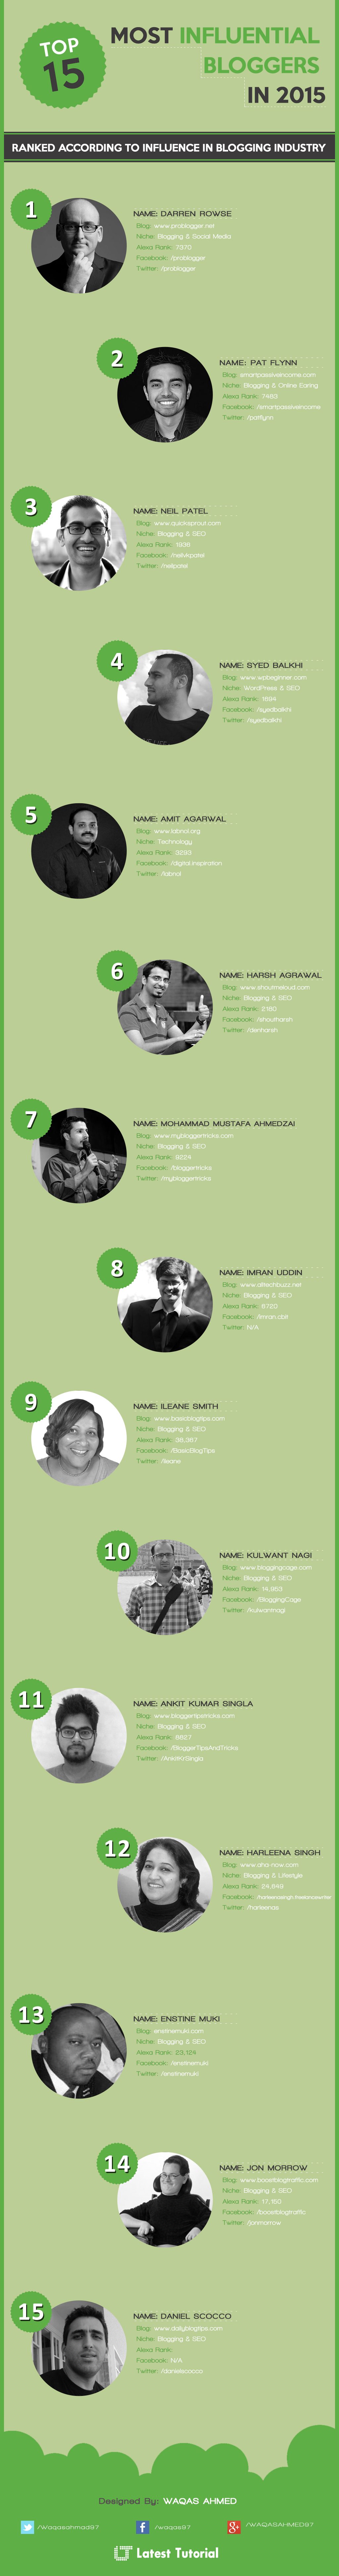 Influential Bloggers